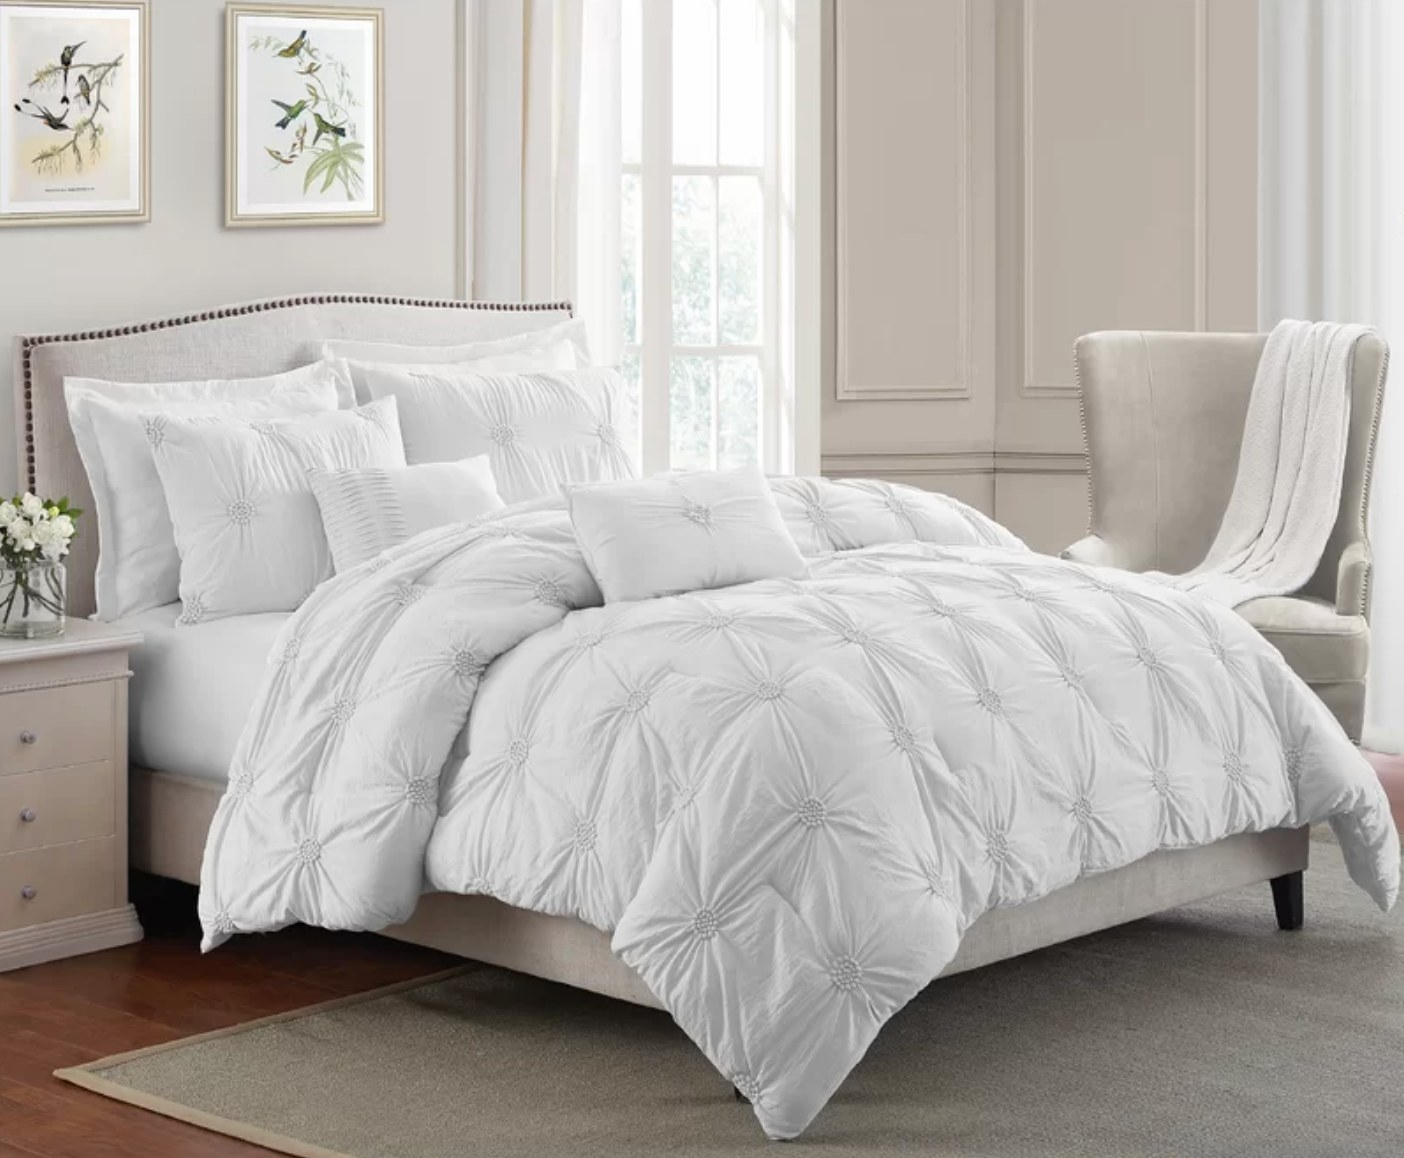 The two-piece comforter set in white